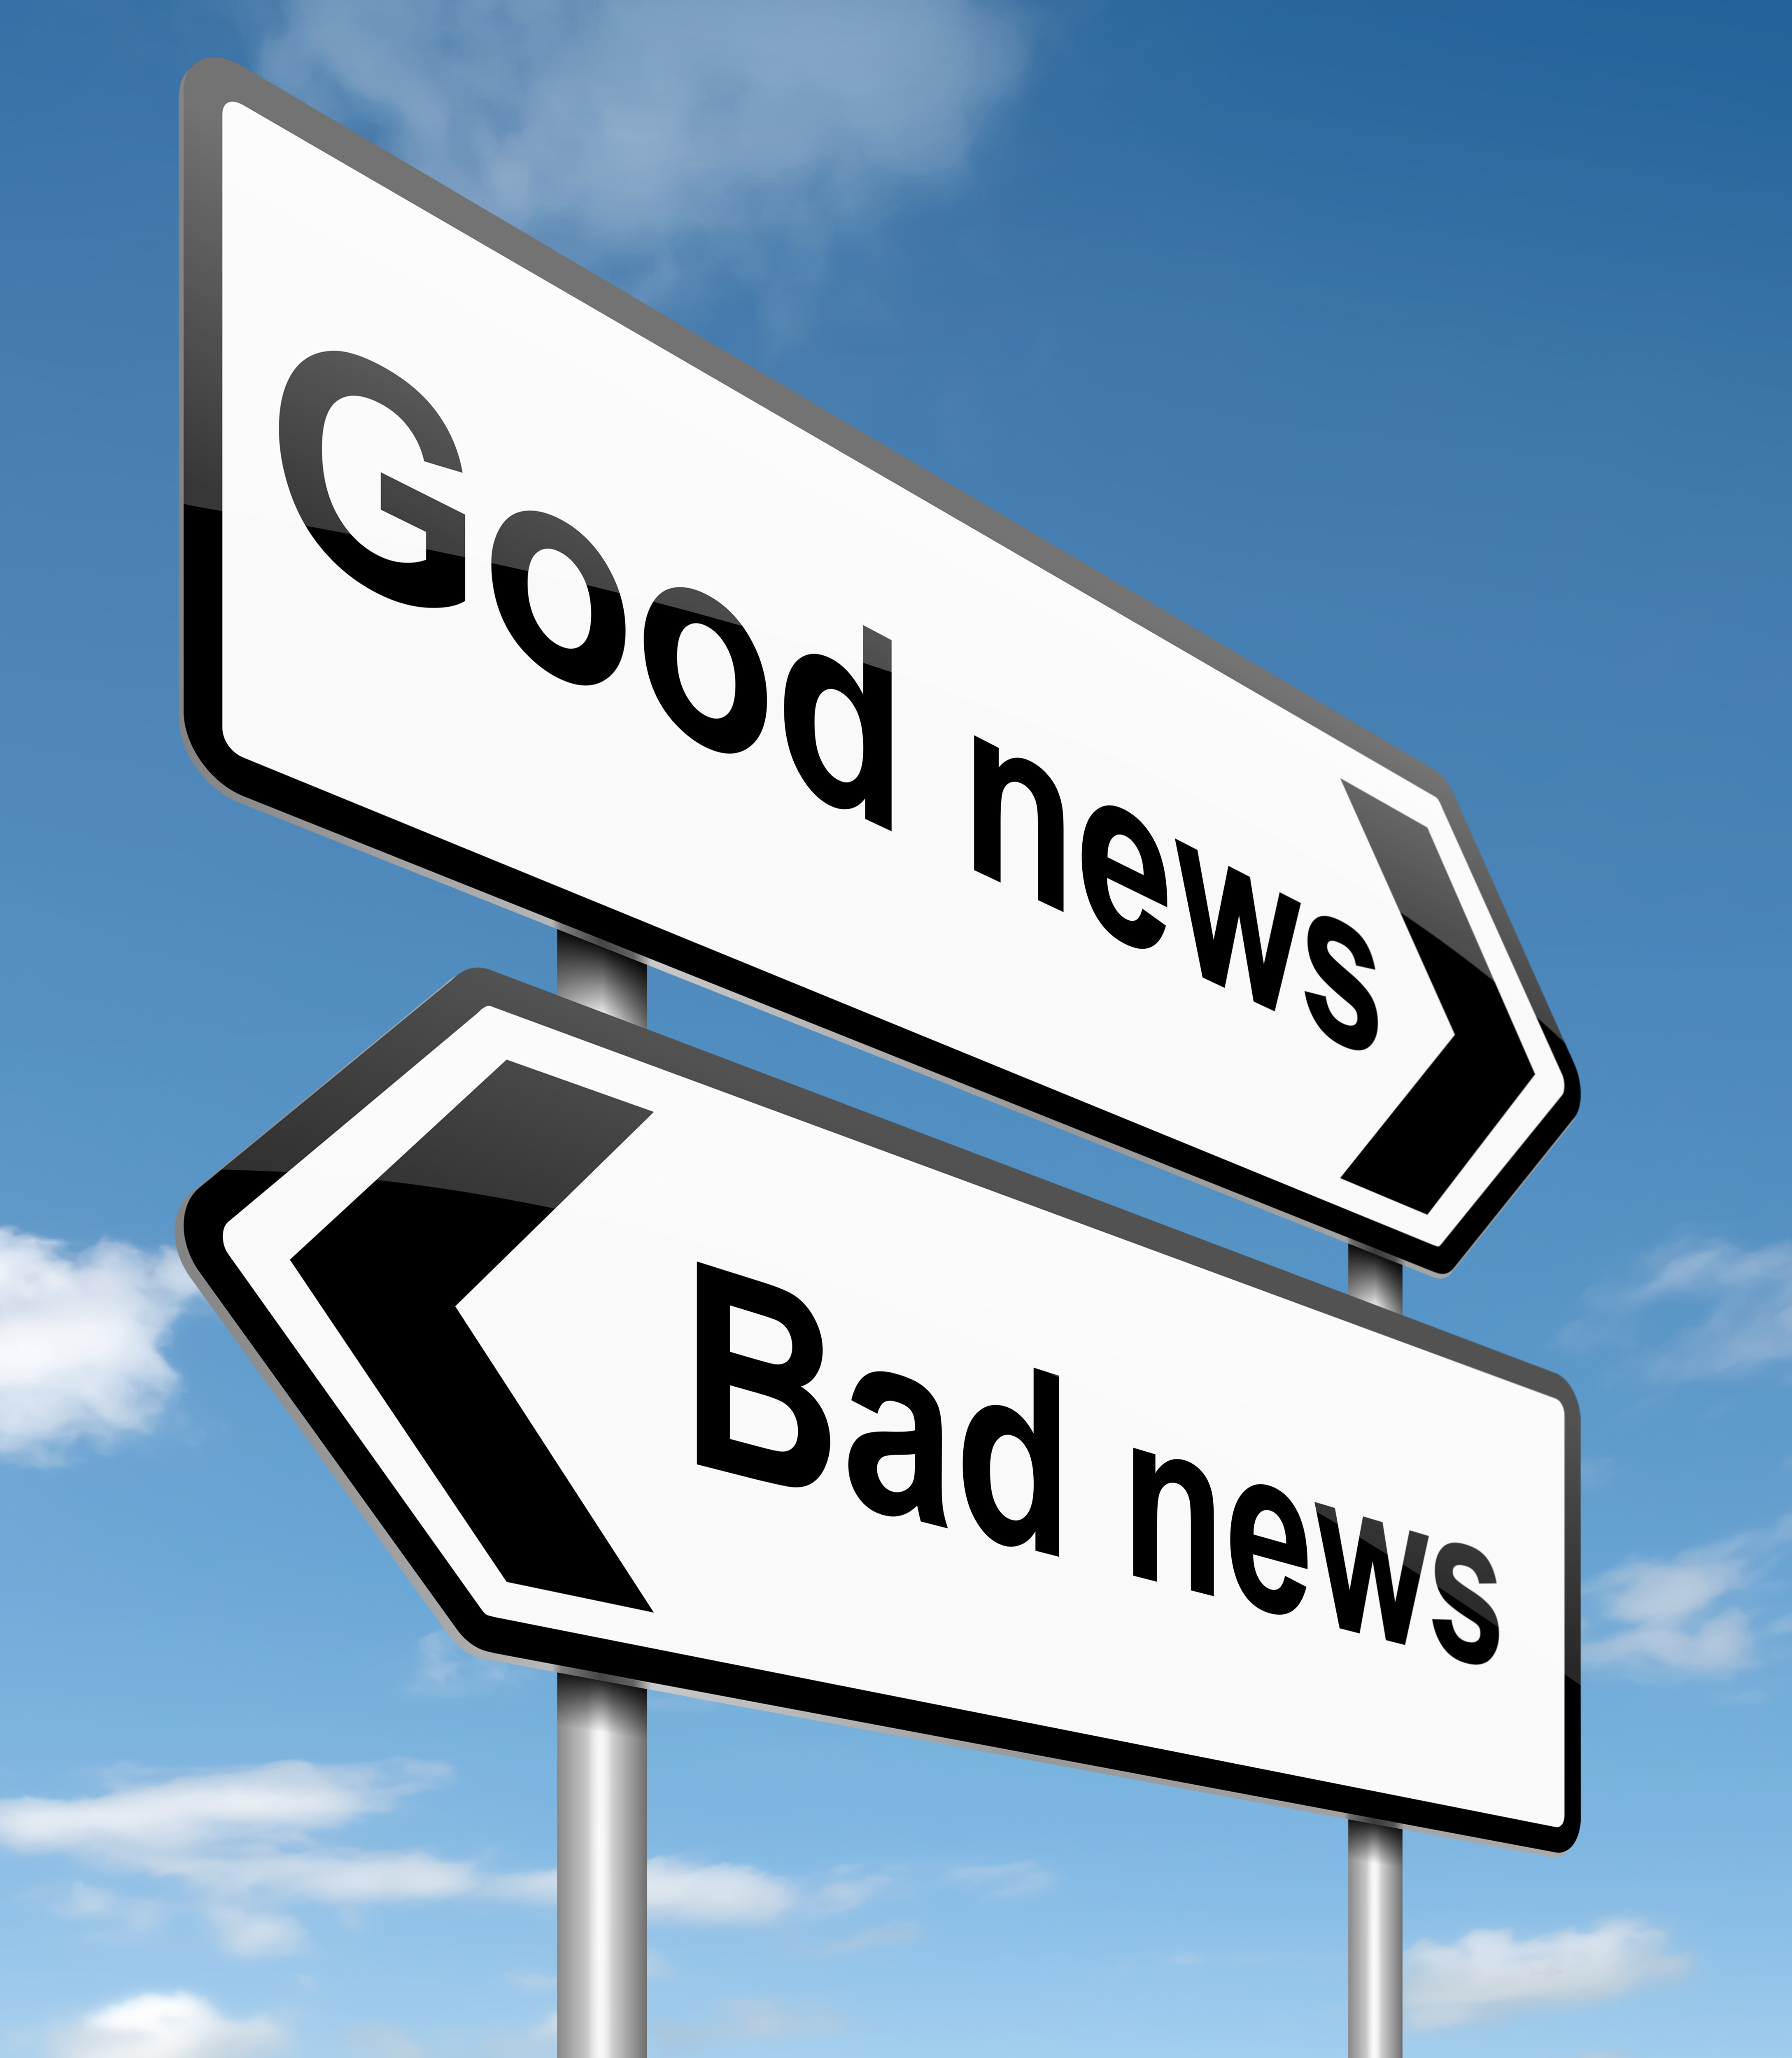 Good News Or Bad News First? Depends On The Reaction You Want